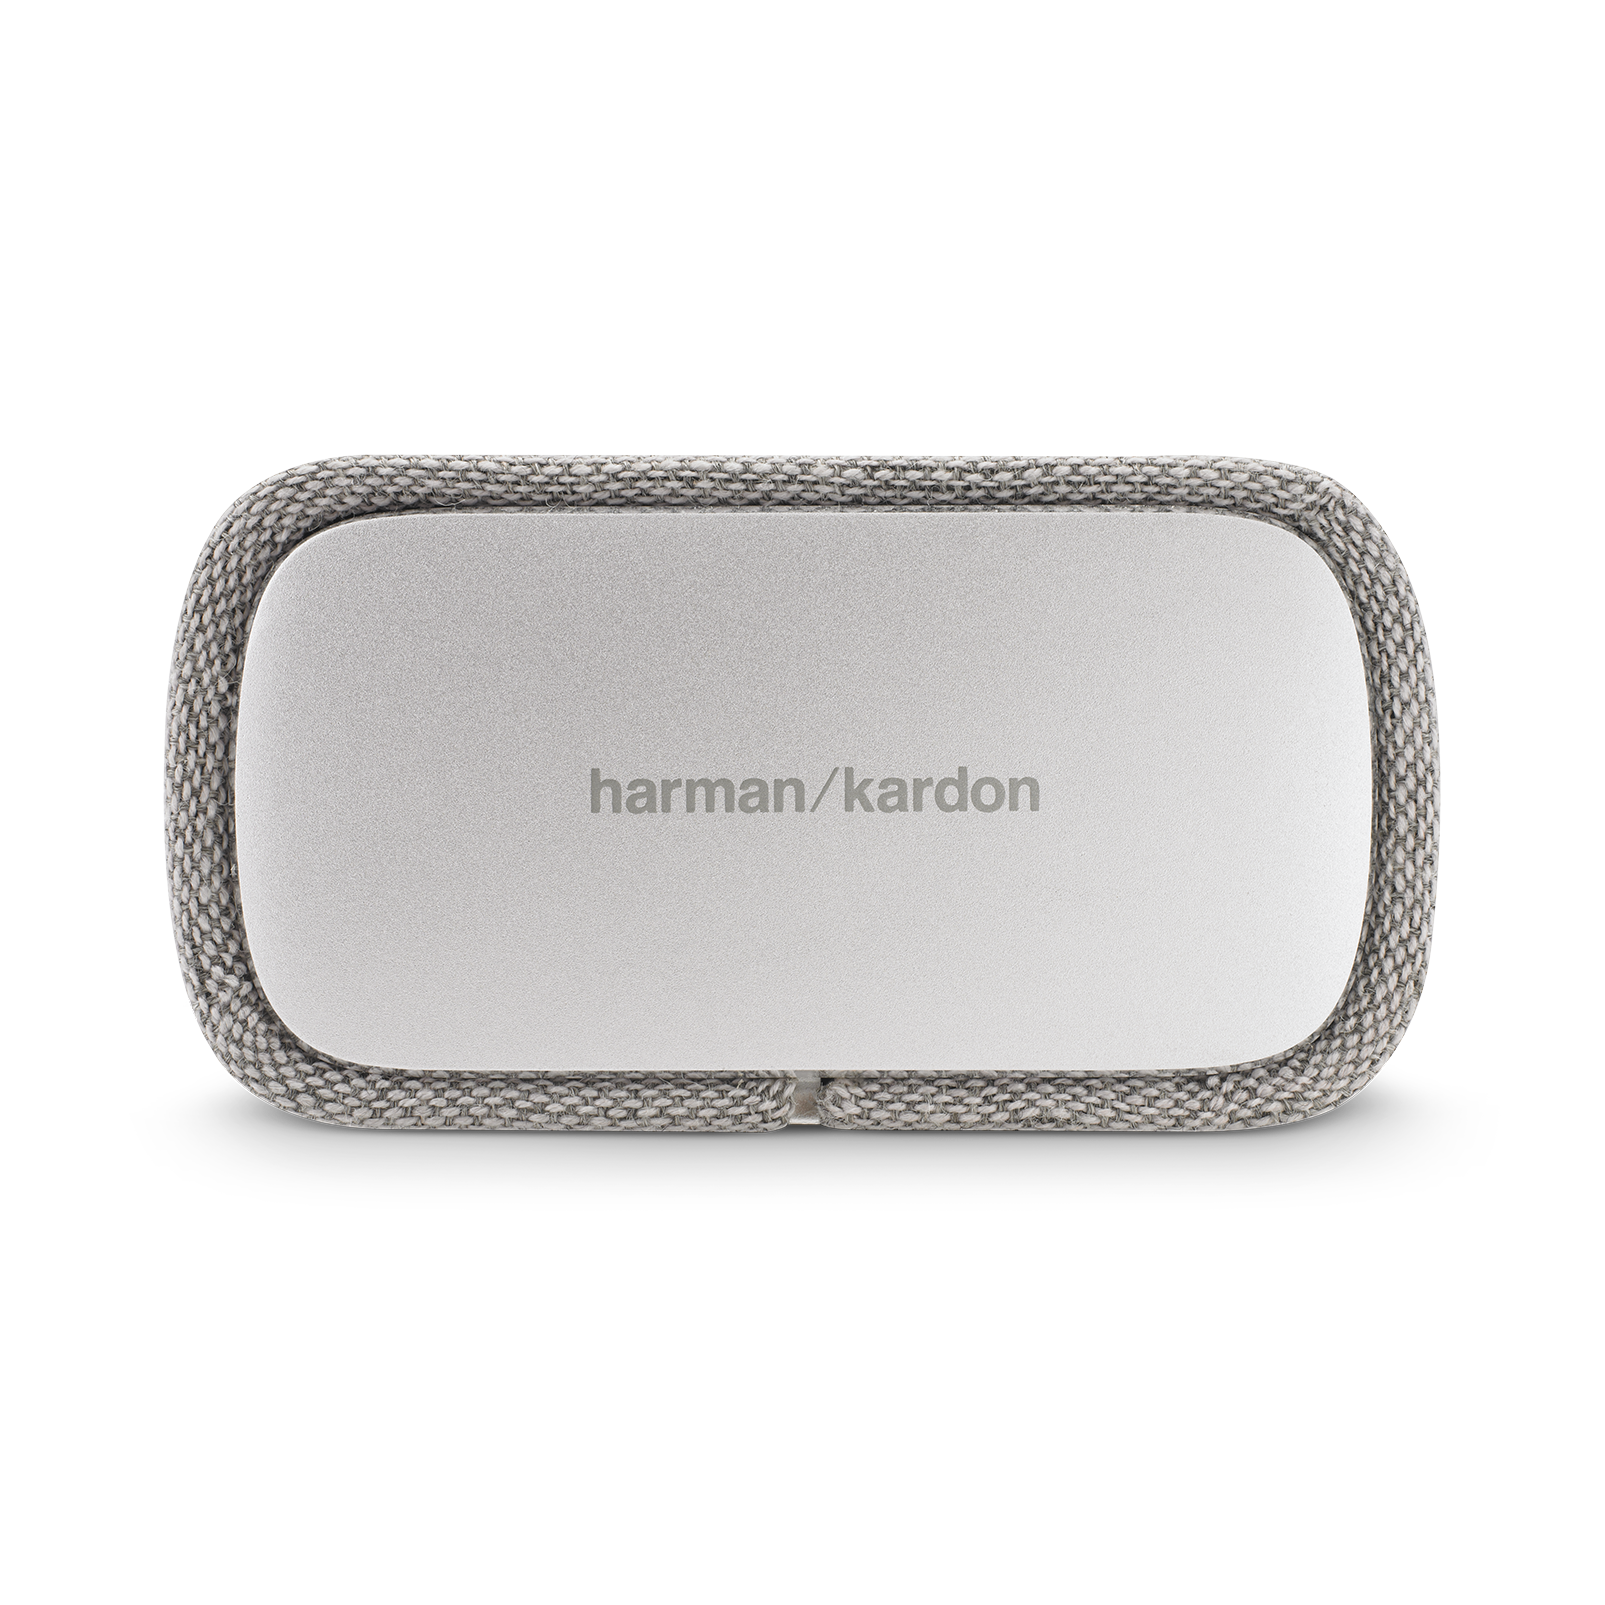 Harman Kardon Citation Bar - Grey - The smartest soundbar for movies and music - Detailshot 3